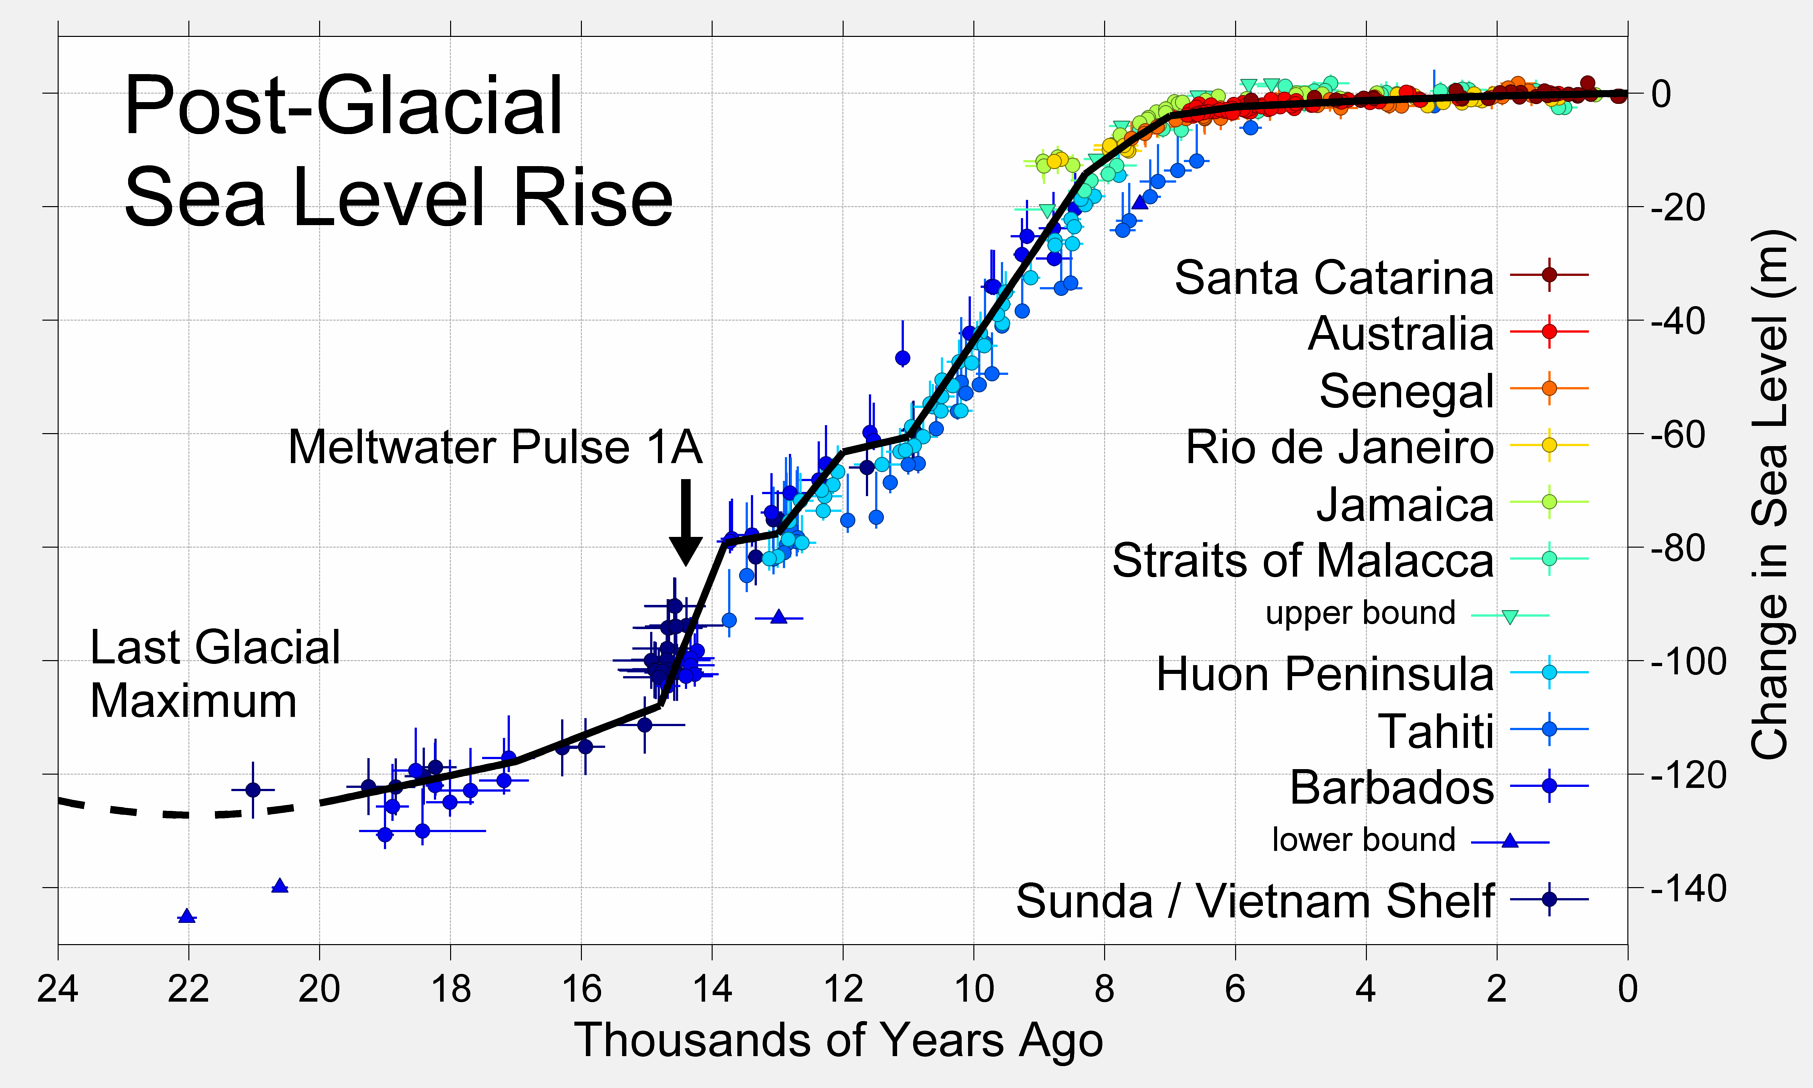 http://upload.wikimedia.org/wikipedia/commons/1/1d/Post-Glacial_Sea_Level.png